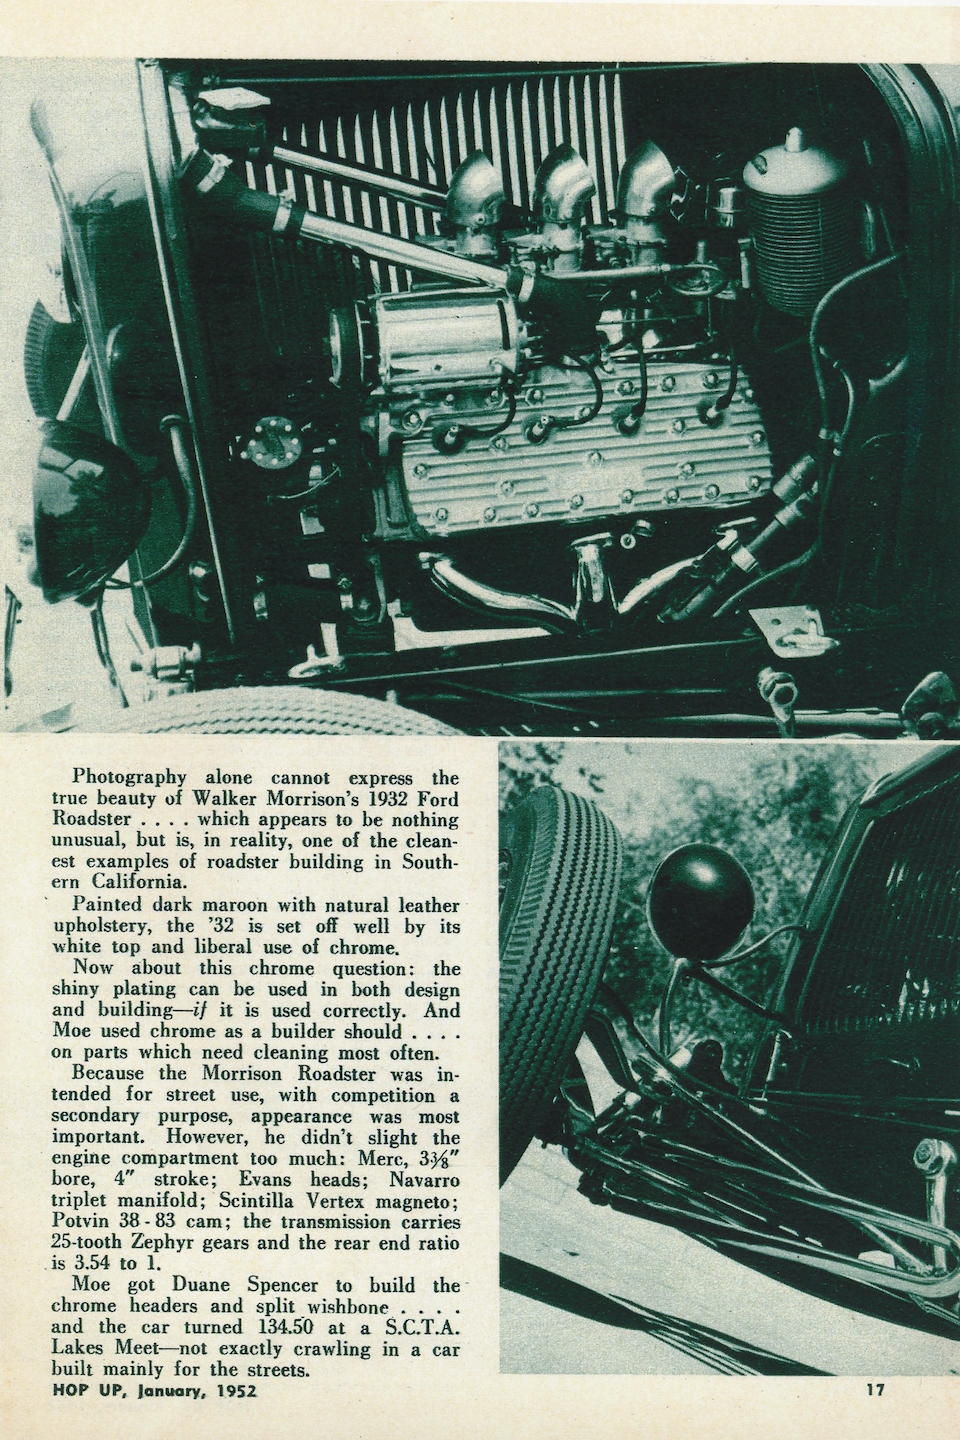 """Subject of an 18-page article in """"The Rodder's Journal"""",The Walker Morrison Roadster 1932 Ford """"Highboy""""  Chassis no. 18-74450"""